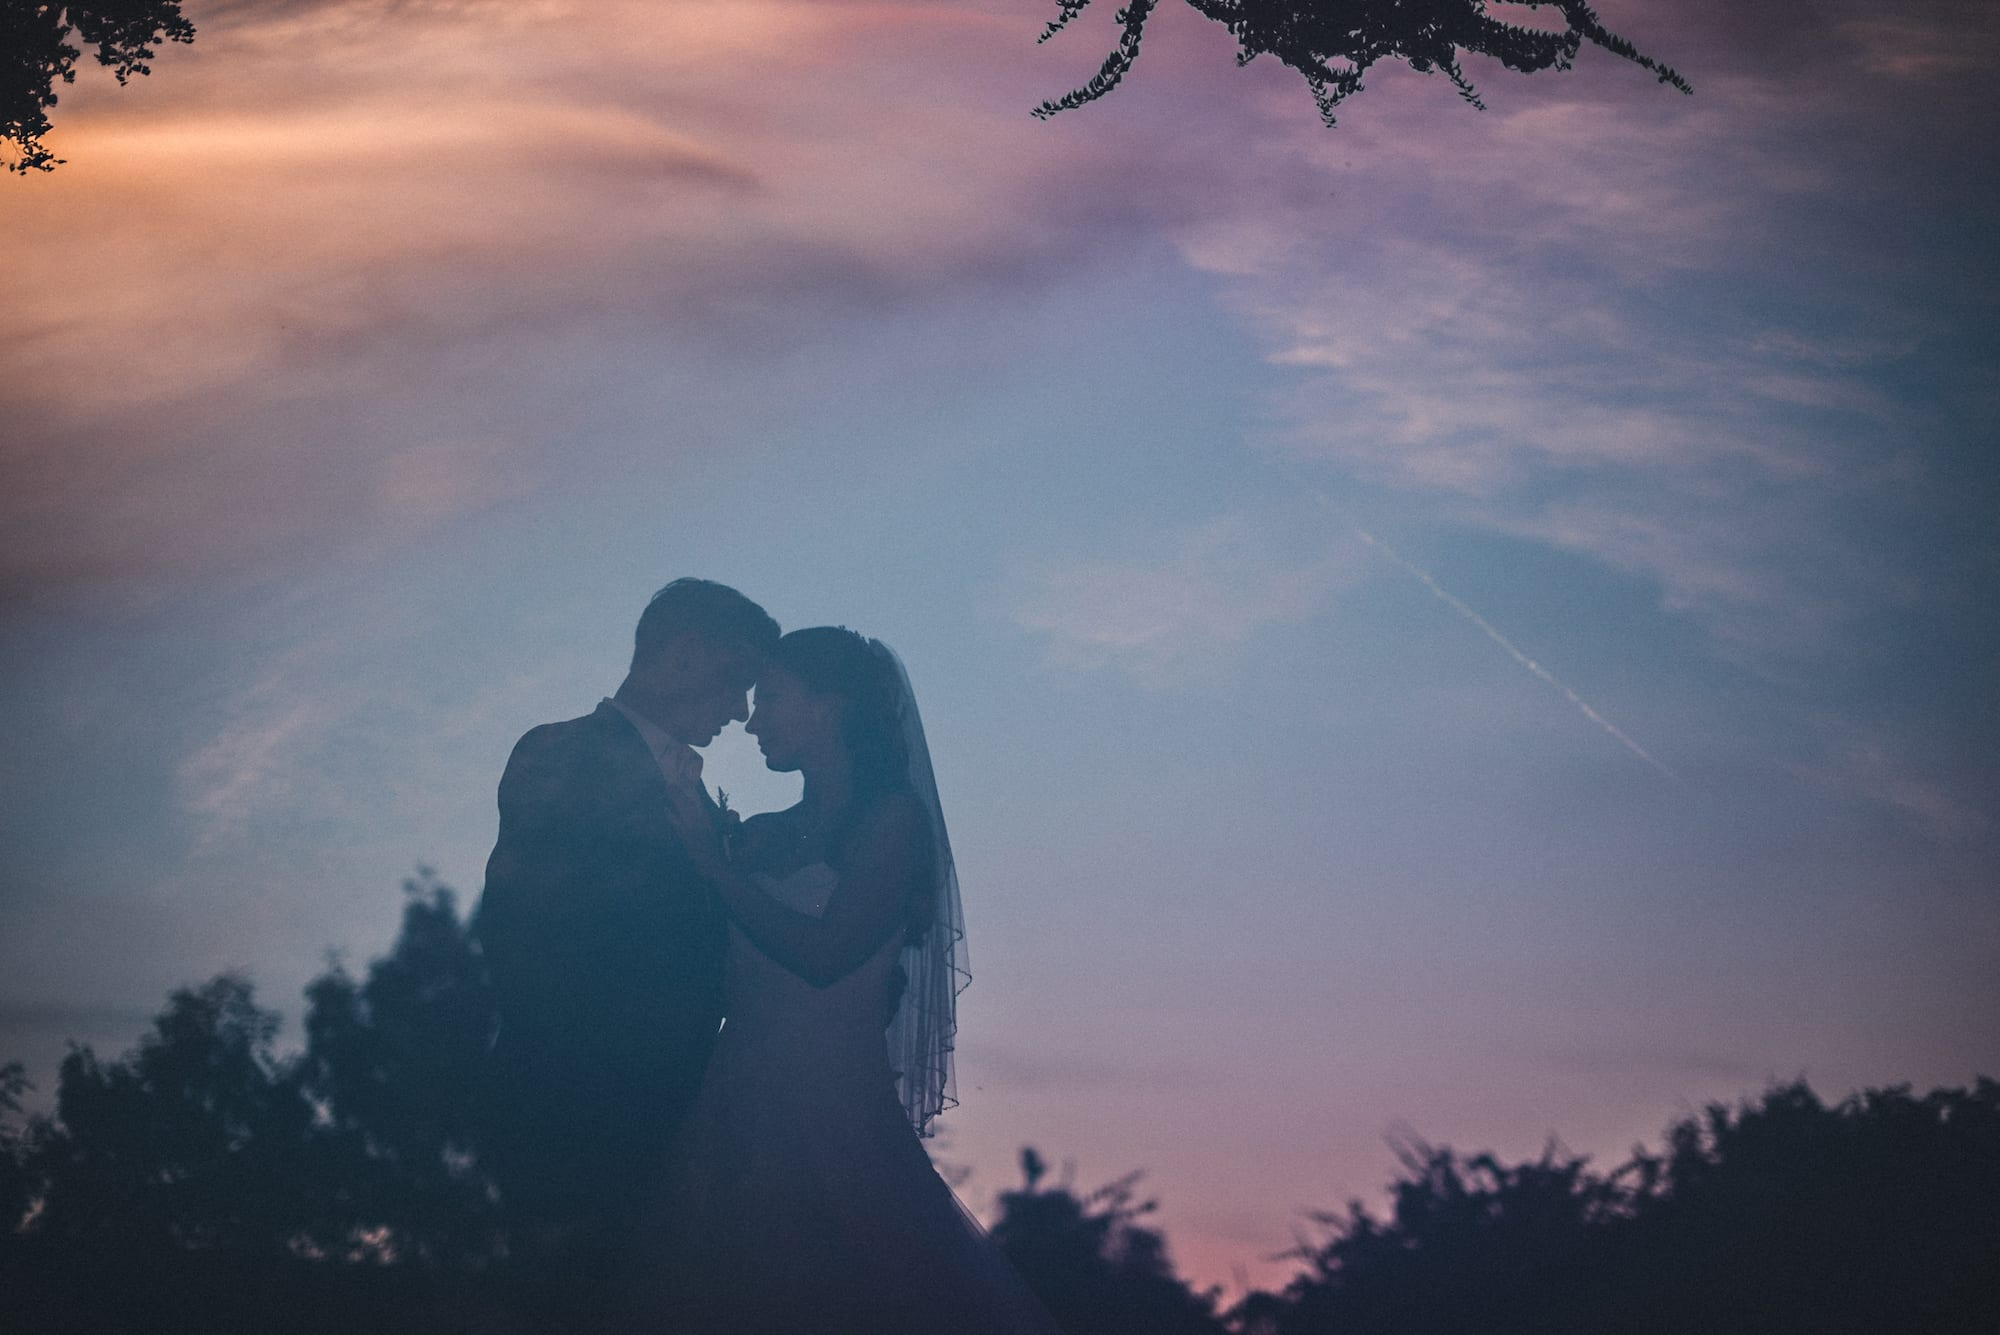 08 double Exposure Wedding photography sundown - Doppelbelichtungen in der Hochzeitsfotografie